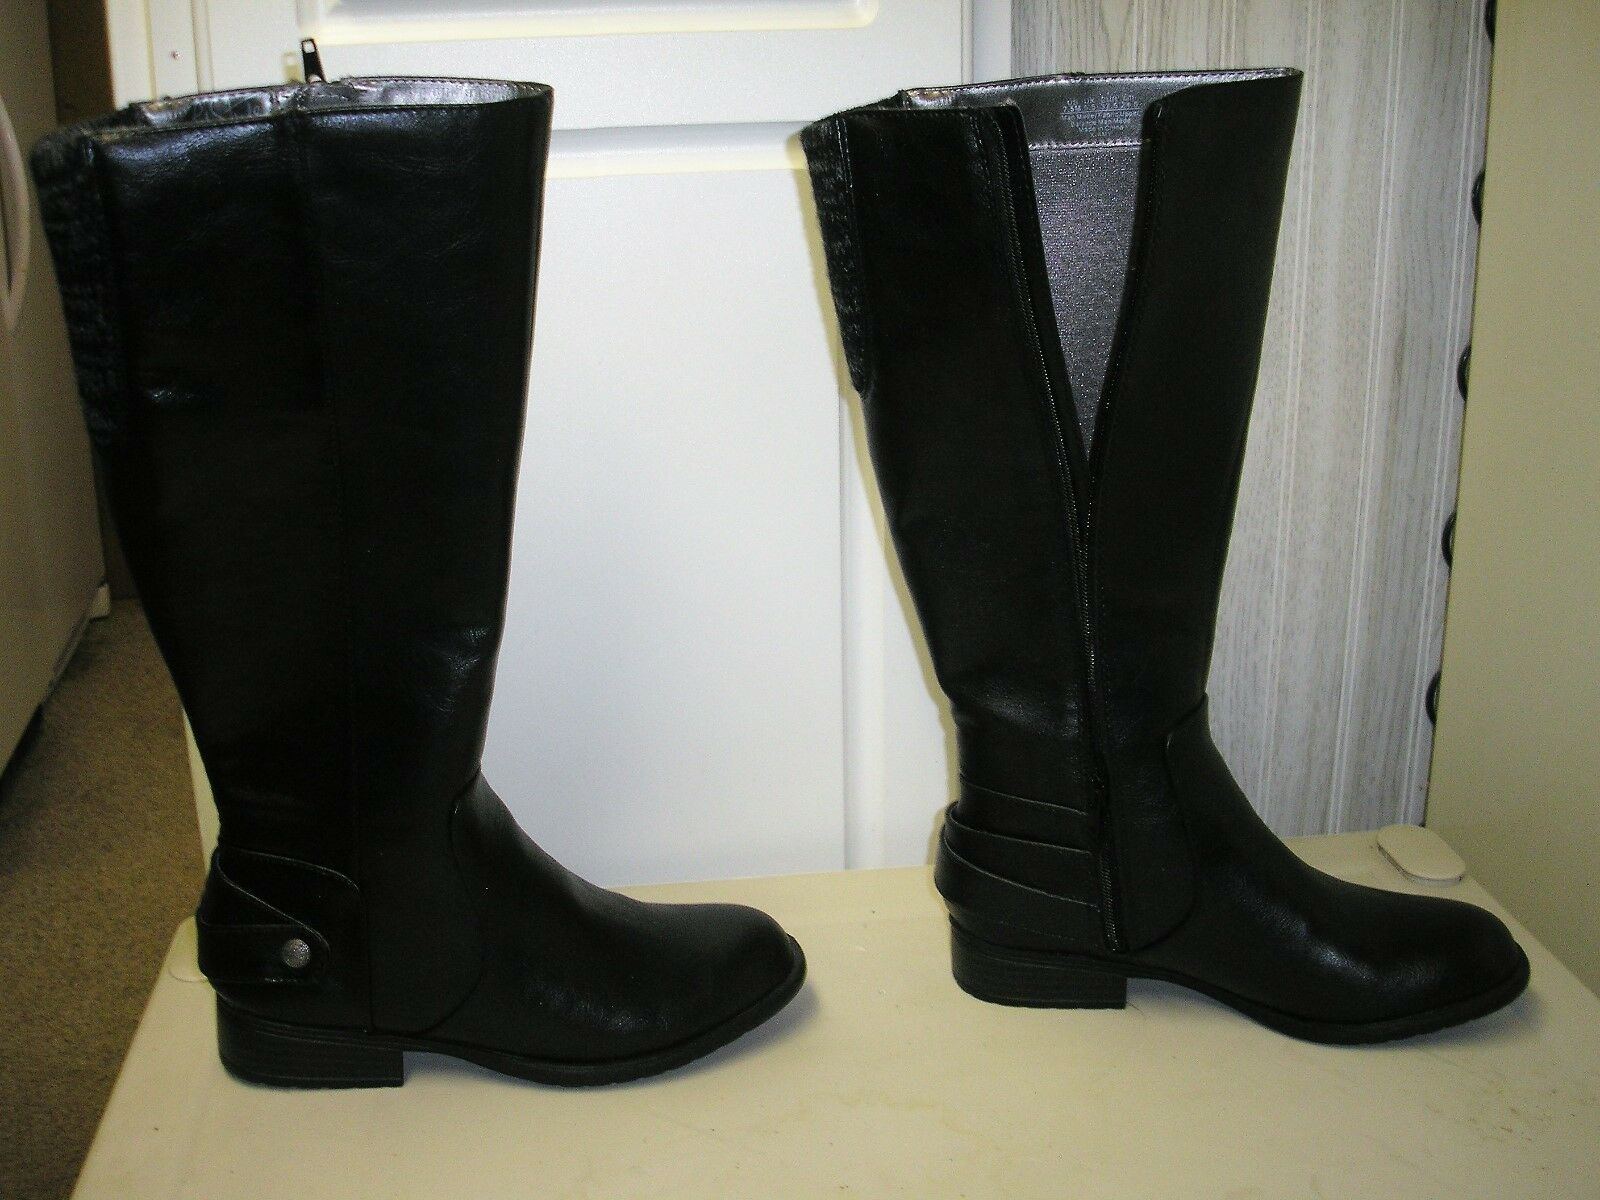 Life Stride Xandy Riding Boots Wide Calf Black Size 7.5 Women's